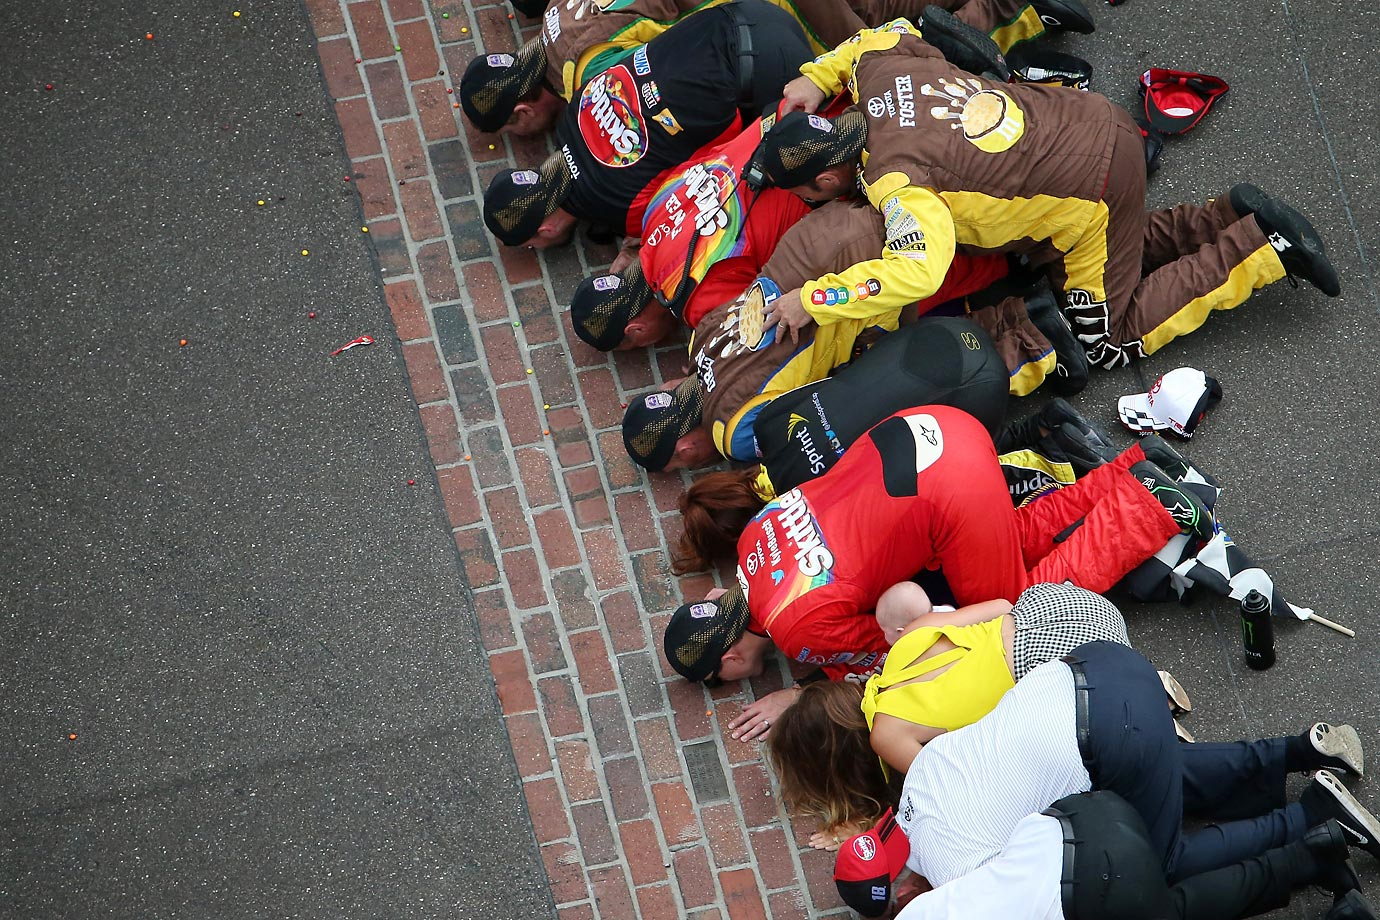 Kyle Busch celebrates with his team by kissing the bricks after winning the NASCAR Sprint Cup Series race at the Brickyard.